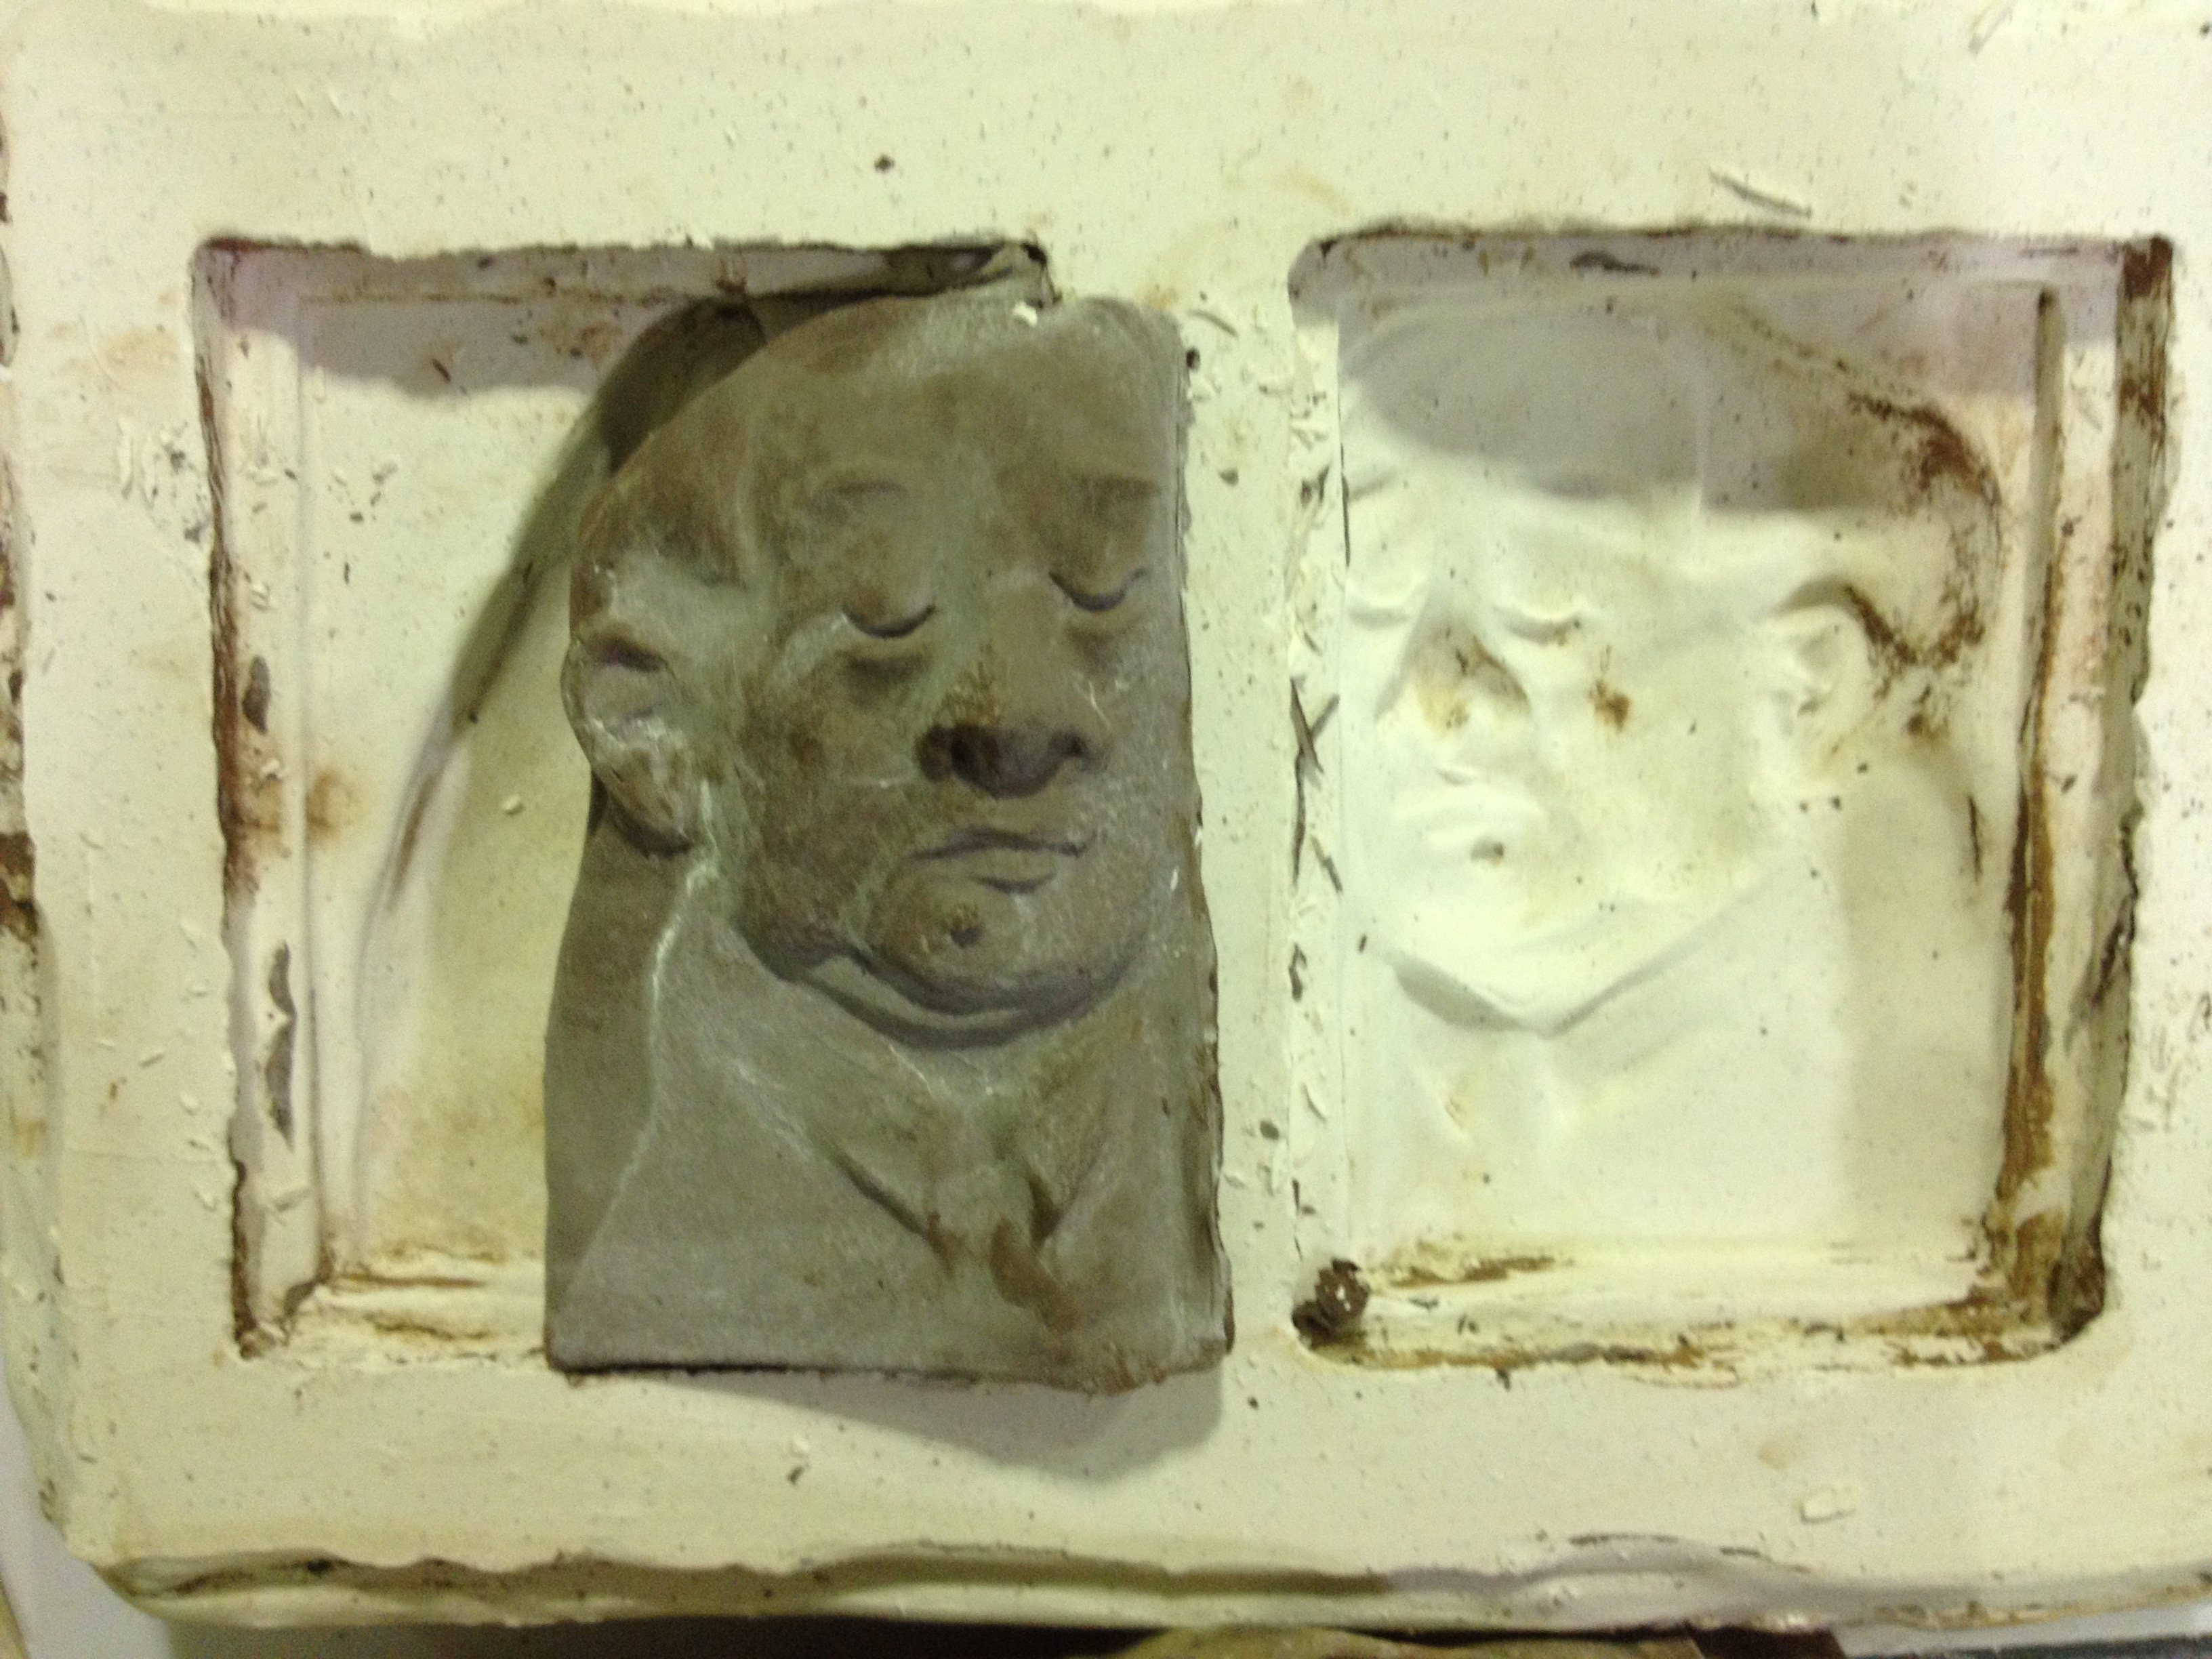 plaster mold for casting